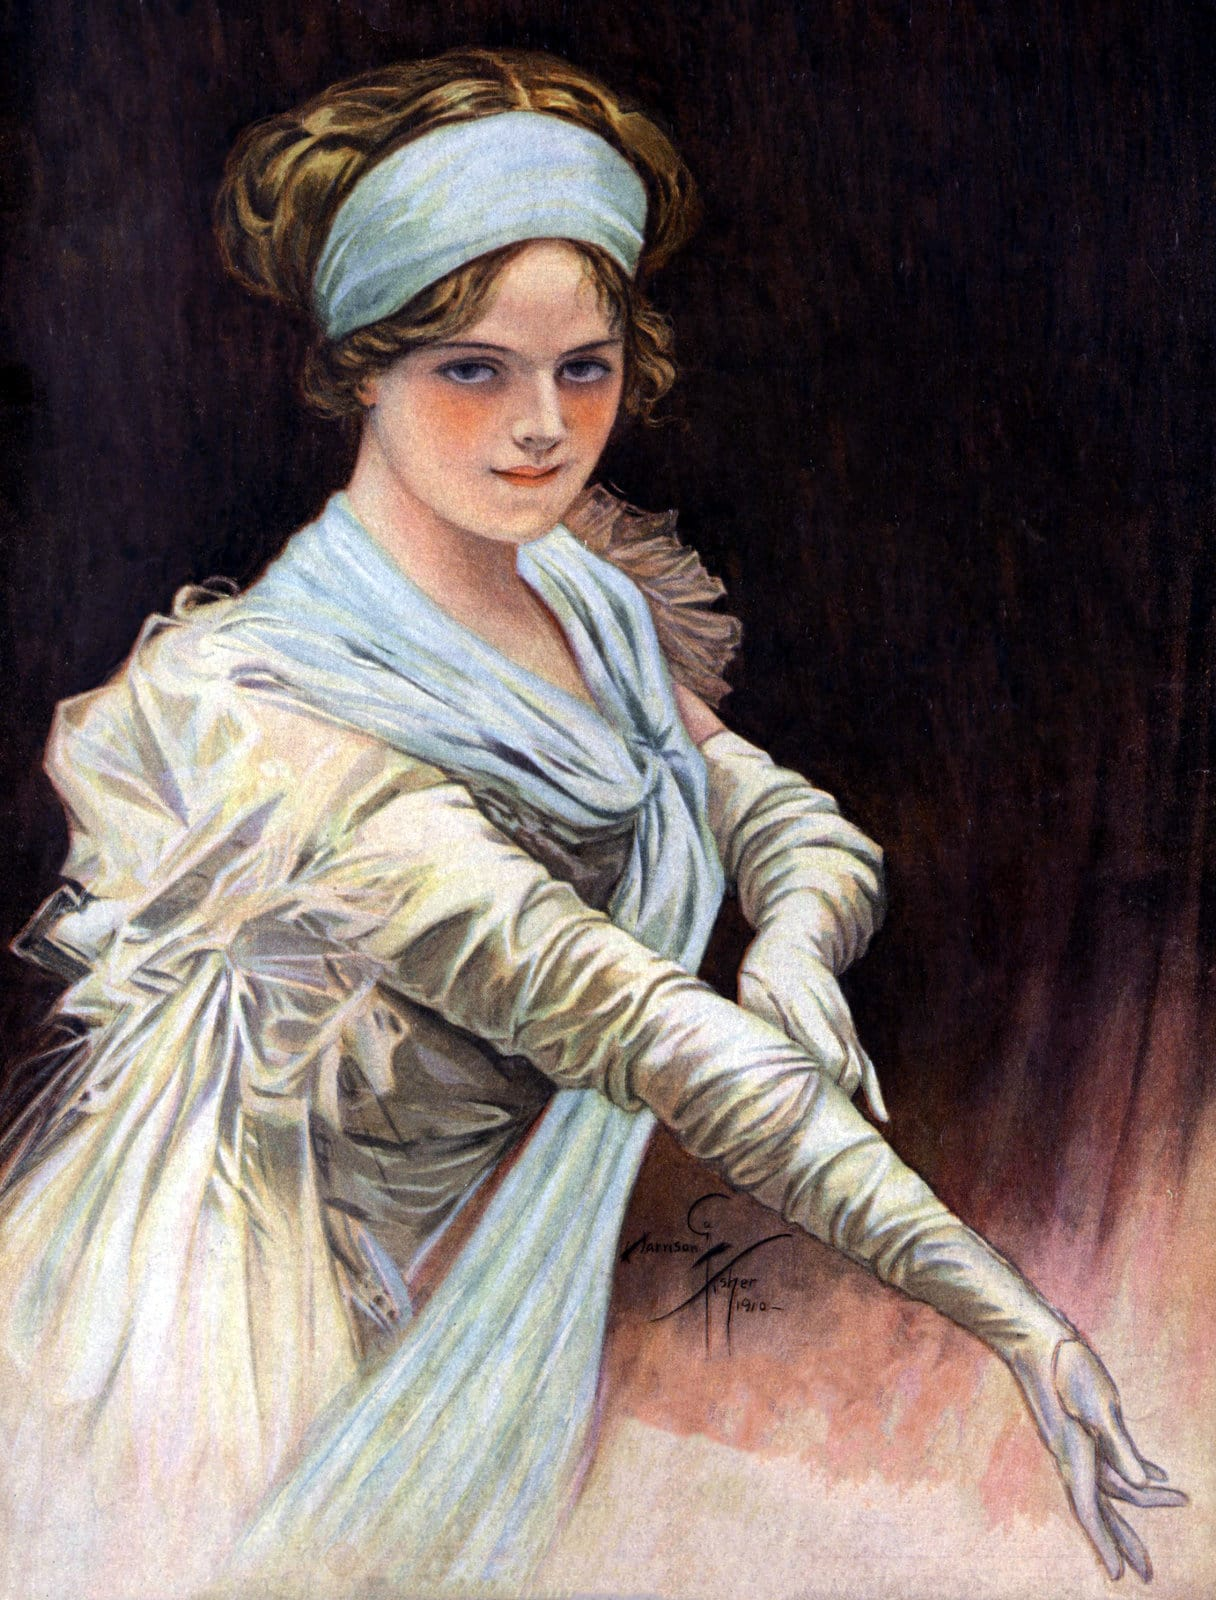 Woman with vintage evening gloves (1910)